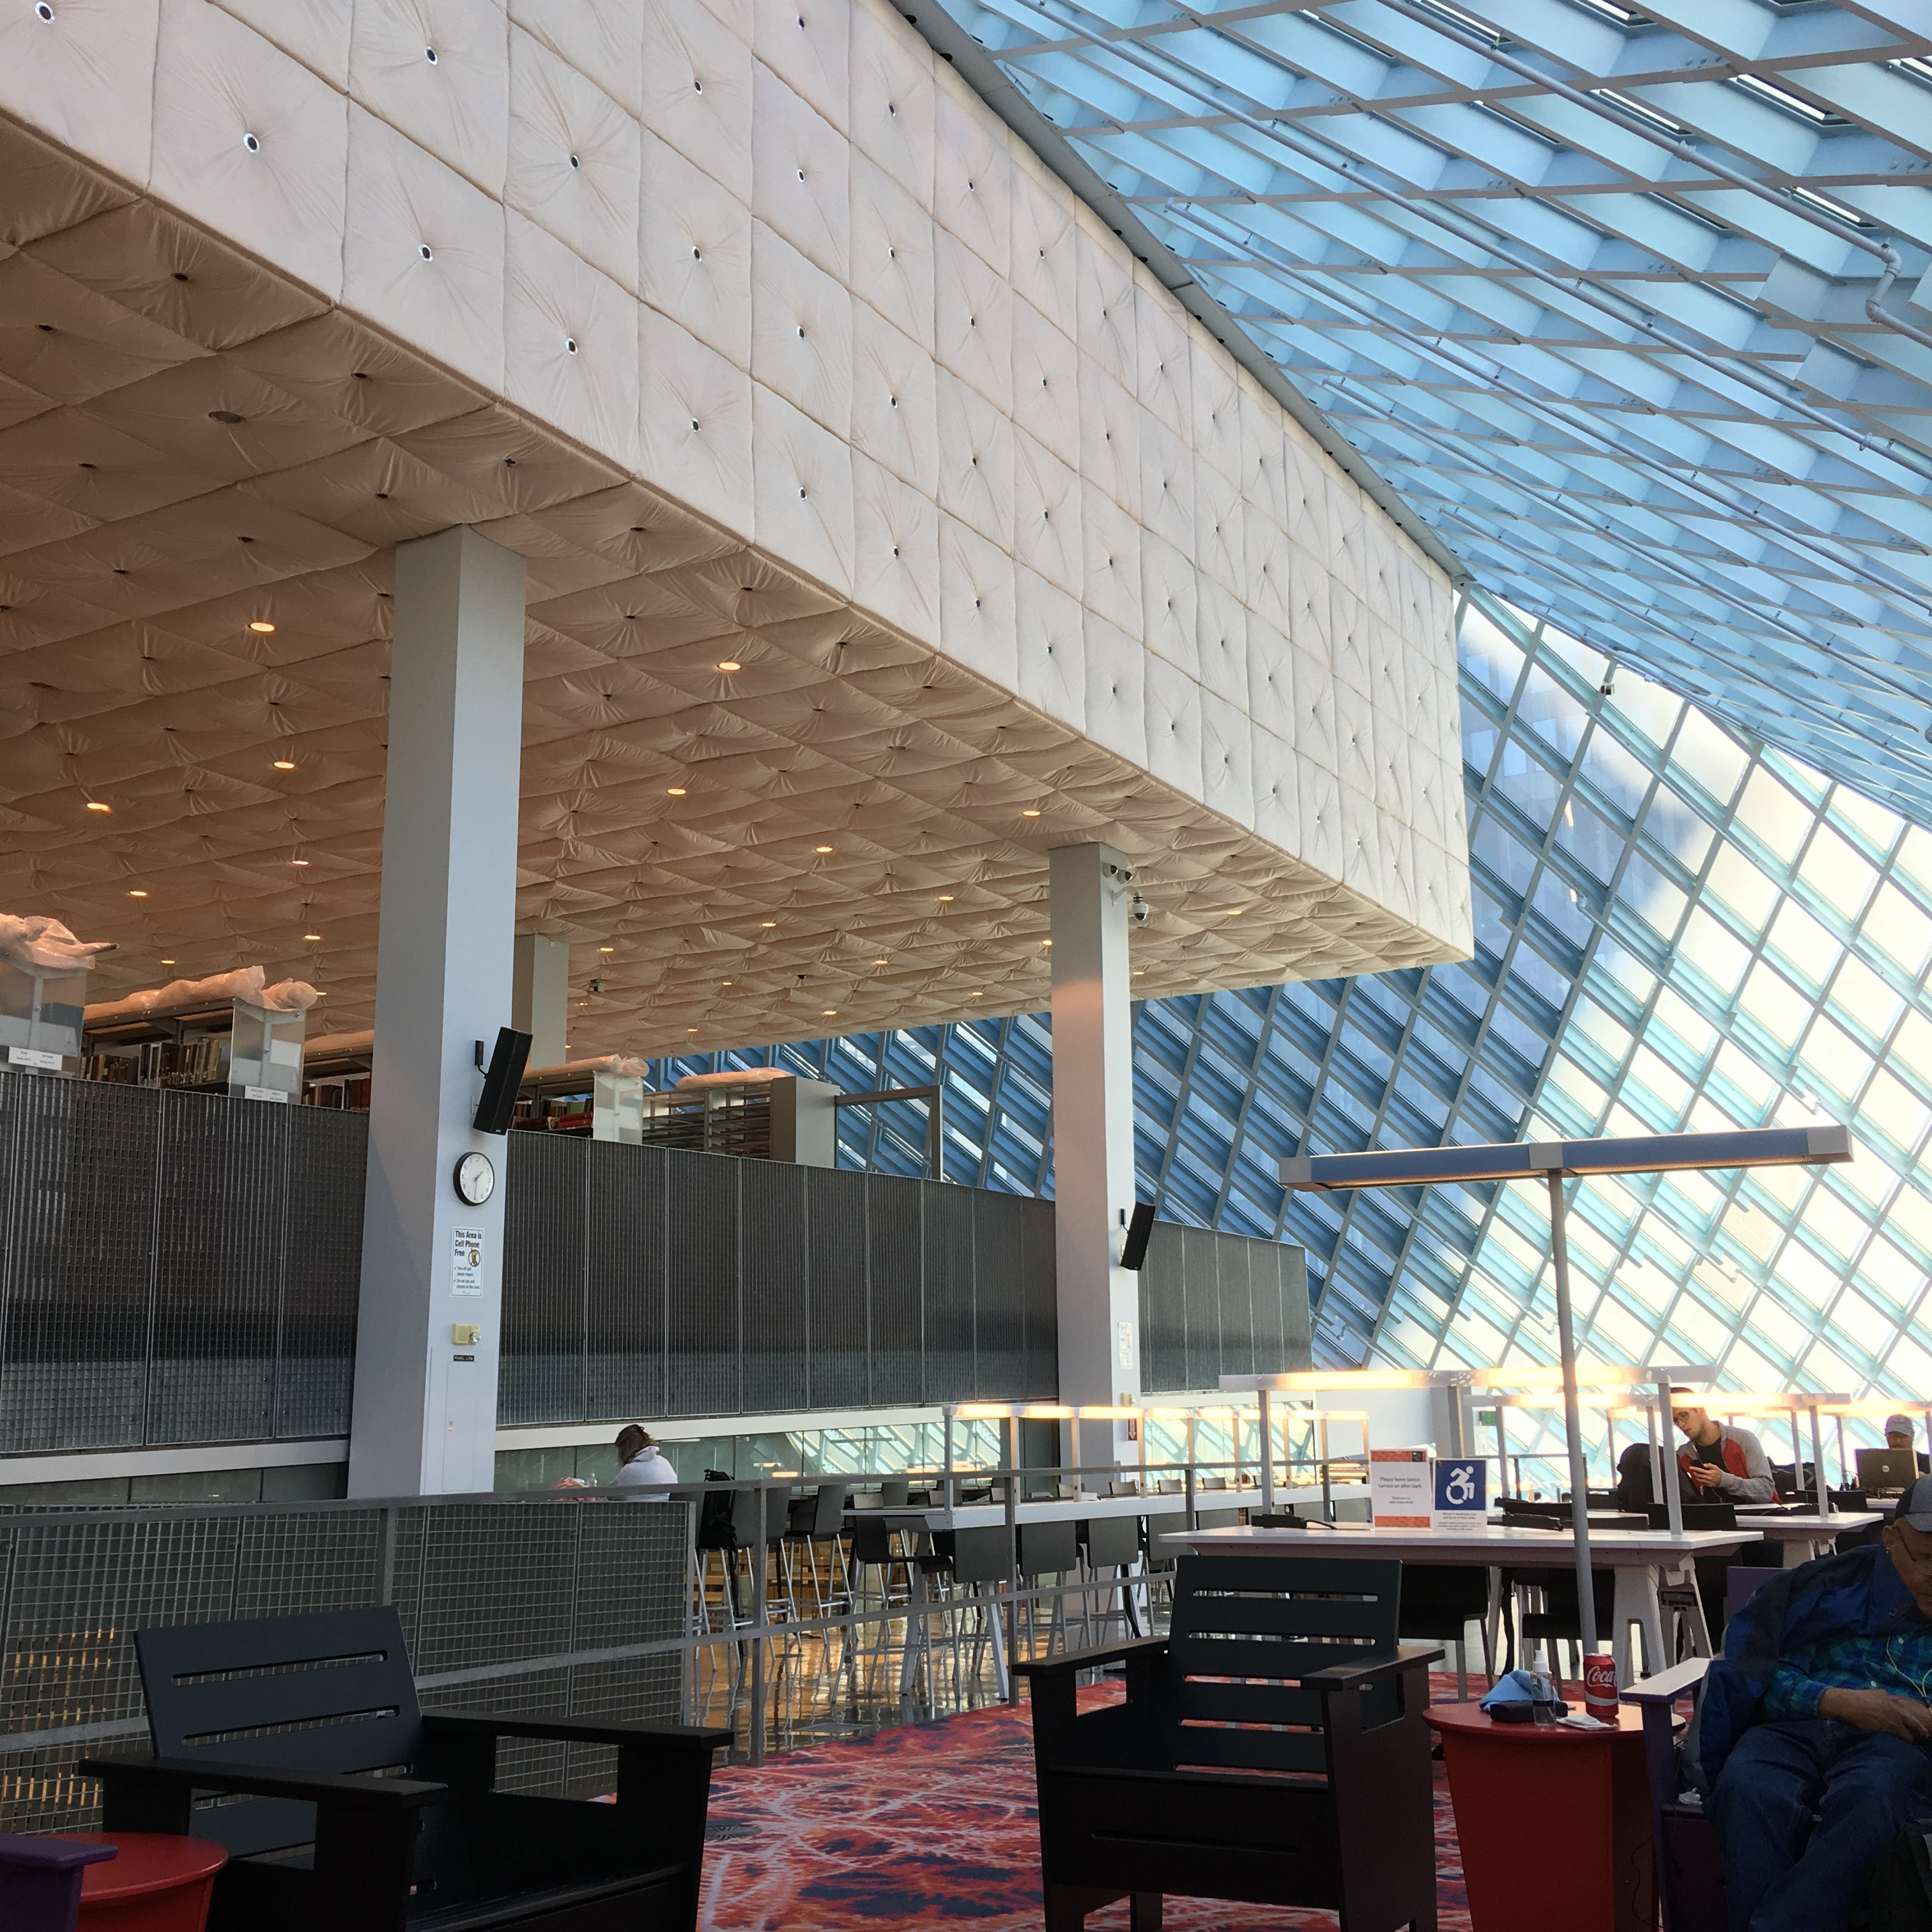 Seattle Public Library (Seattle Central Library) In